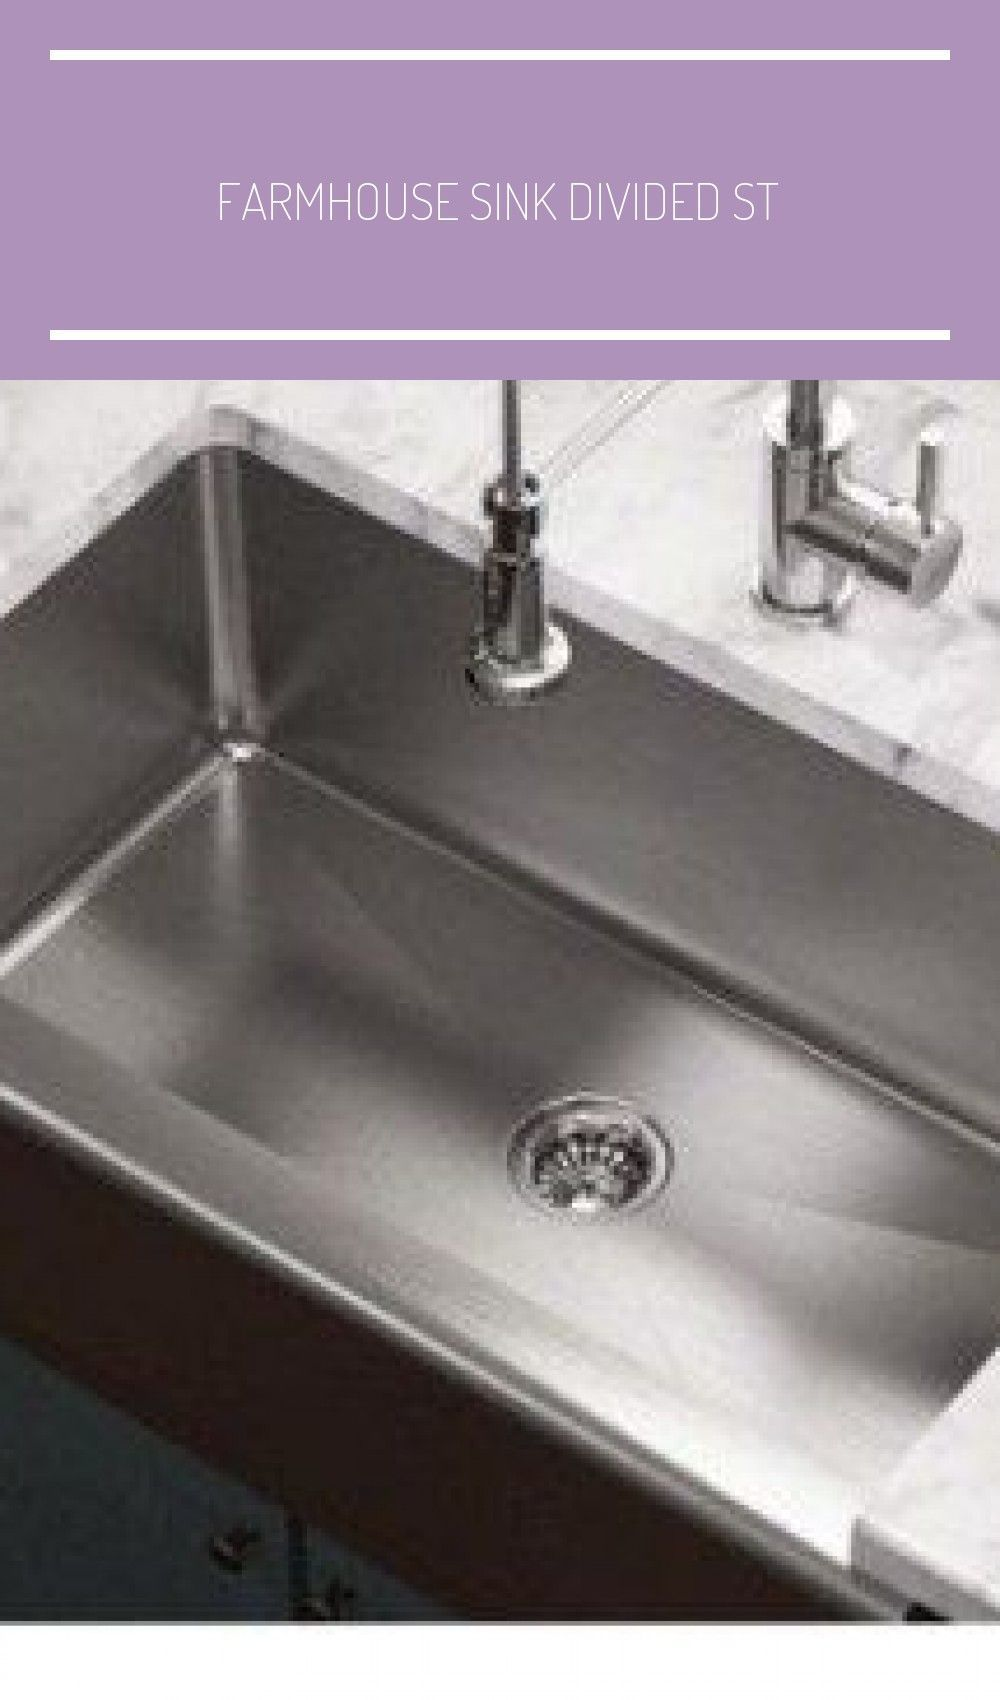 Farmhouse Sink Divided Stainless Steel 27 Ideas Farmhouse Sink Divided Stainless Farmhouse Sink Divided Stainless Steel 27 Ideas Farmhouse Sink Divided Stai